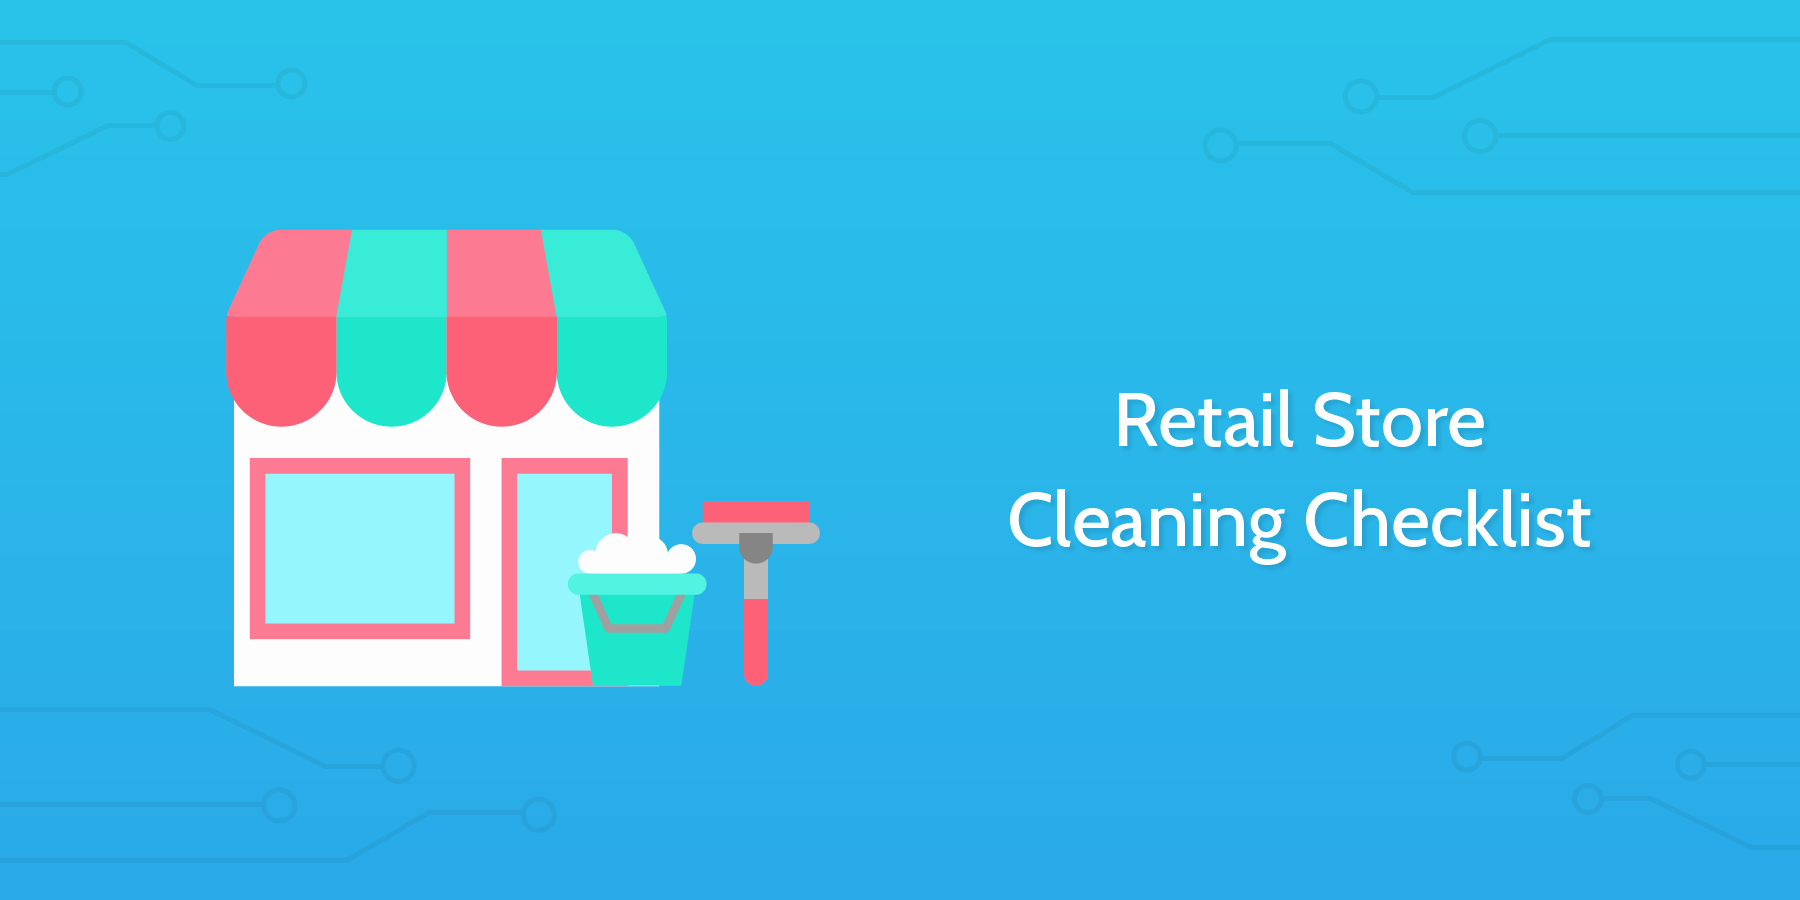 Retail Store Checklist Template Inspirational Retail Store Cleaning Checklist